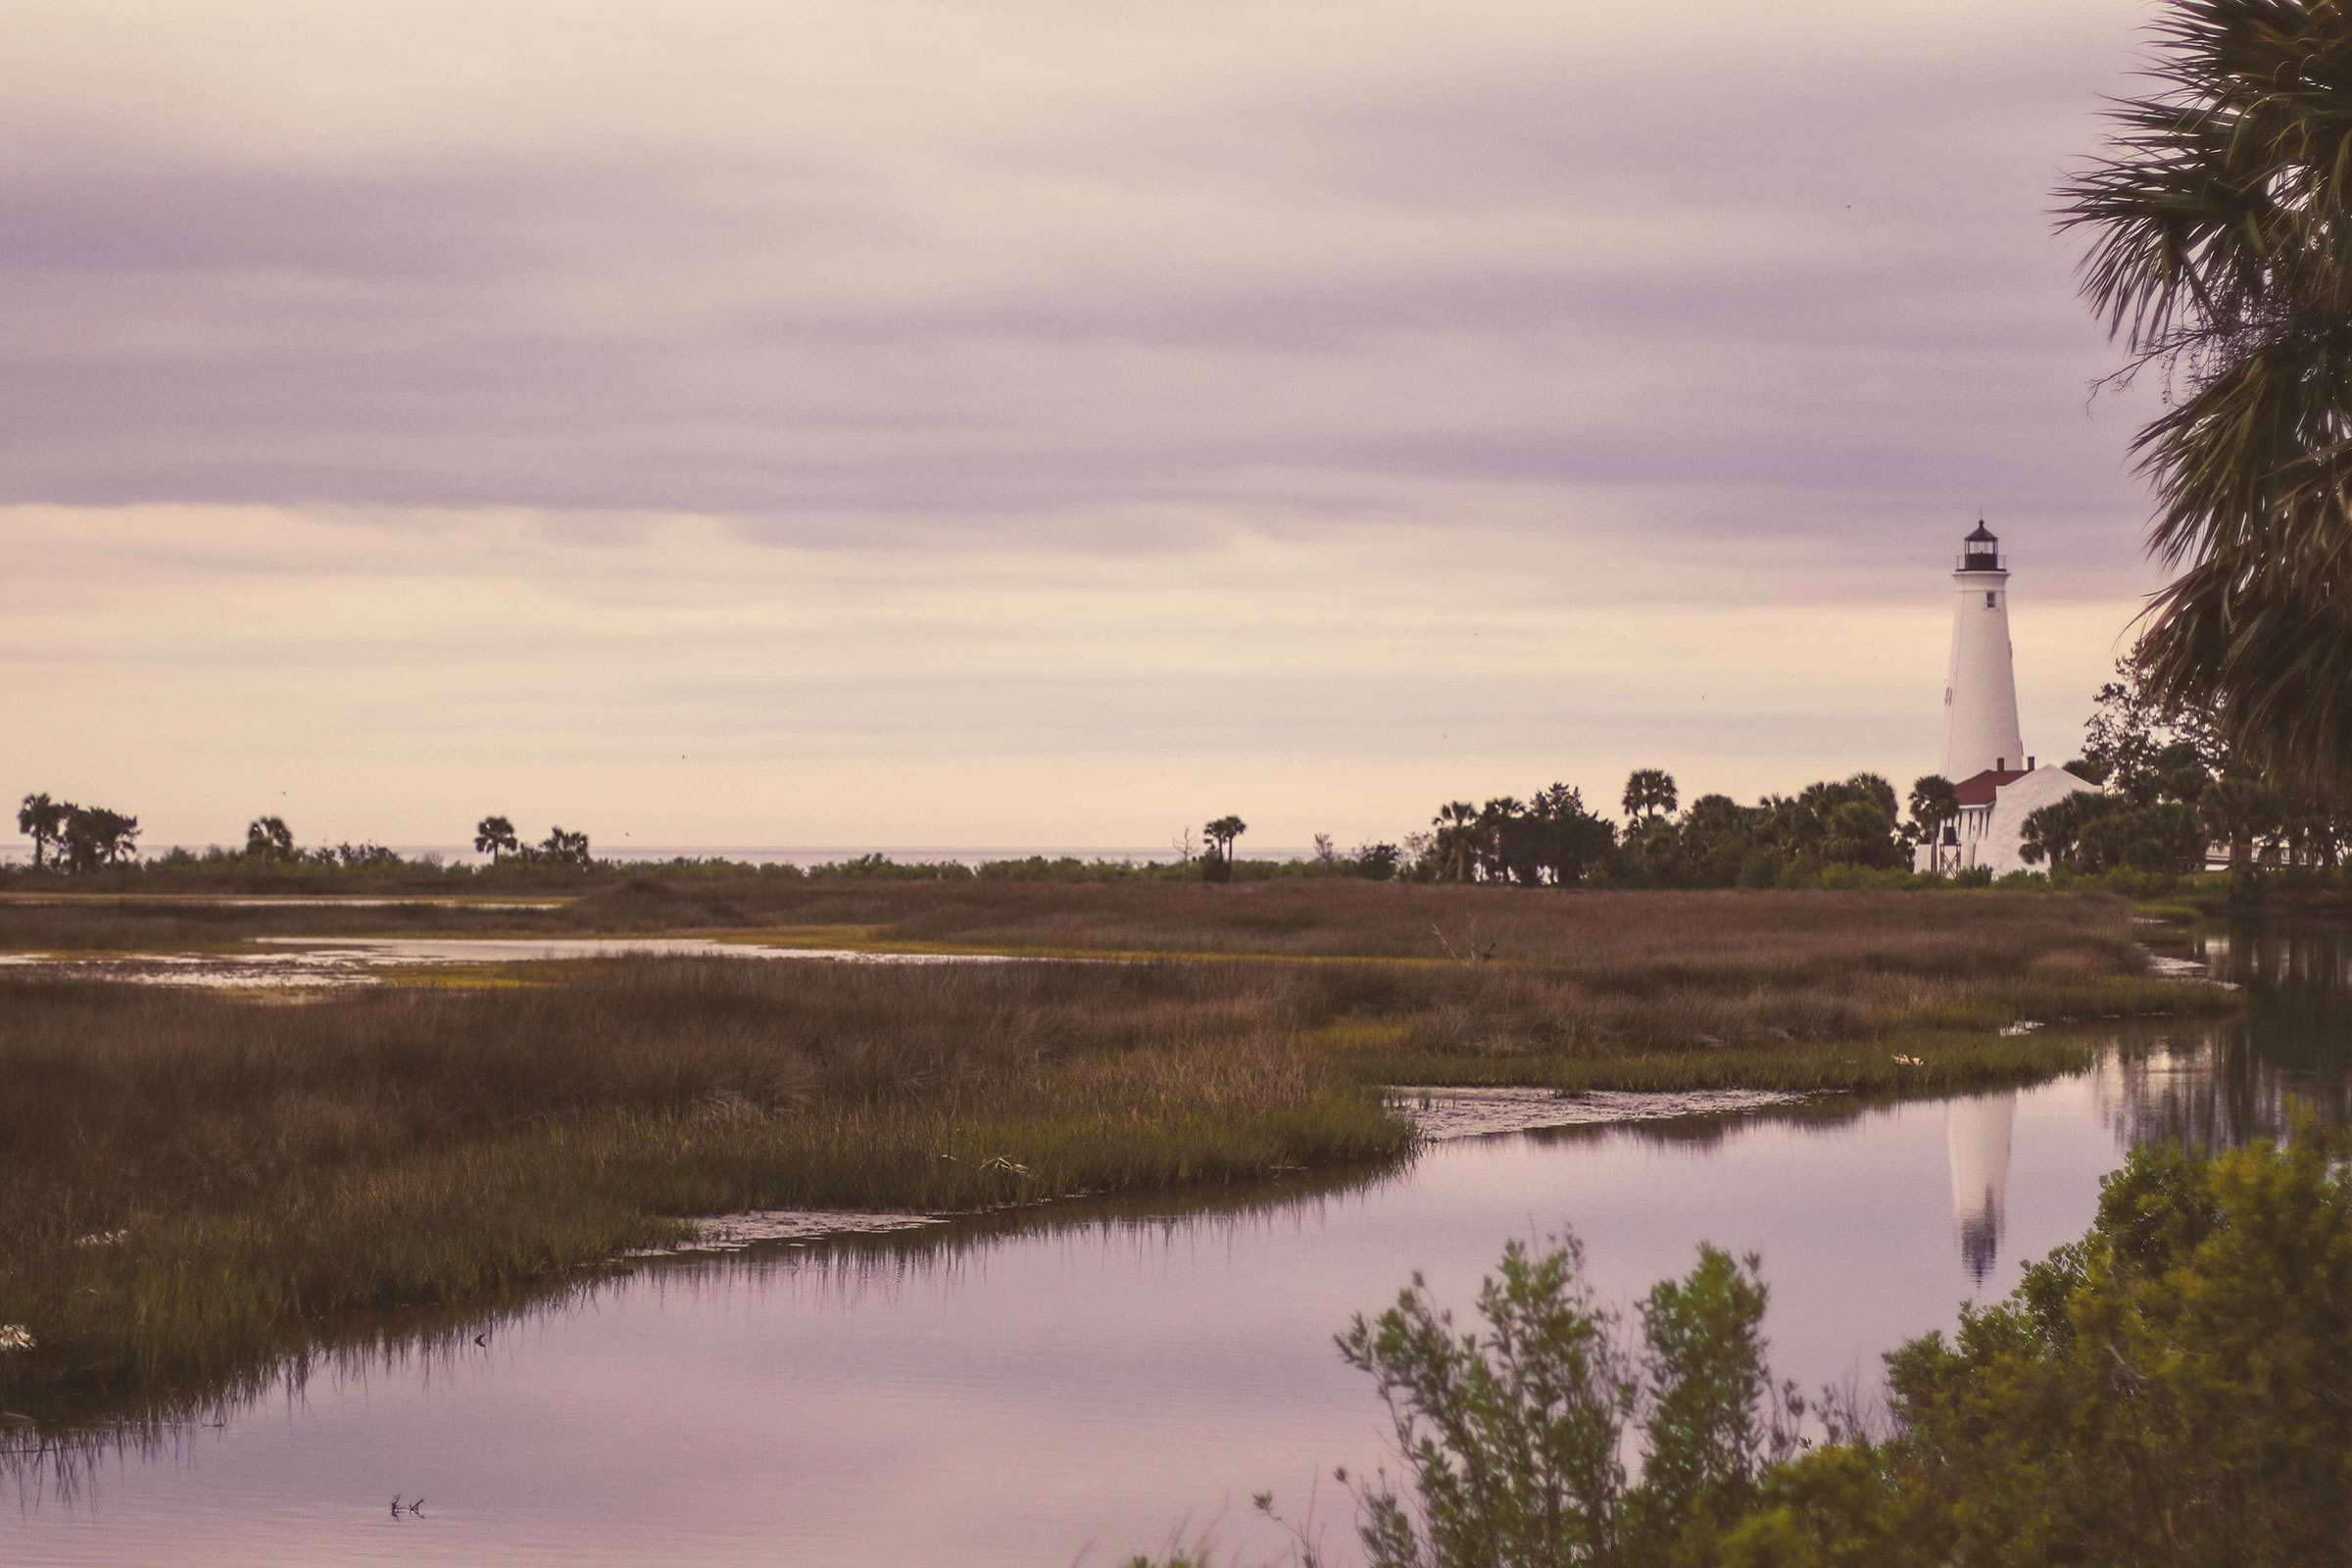 The St. Mark's Lighthouse in Wakulla Florida.